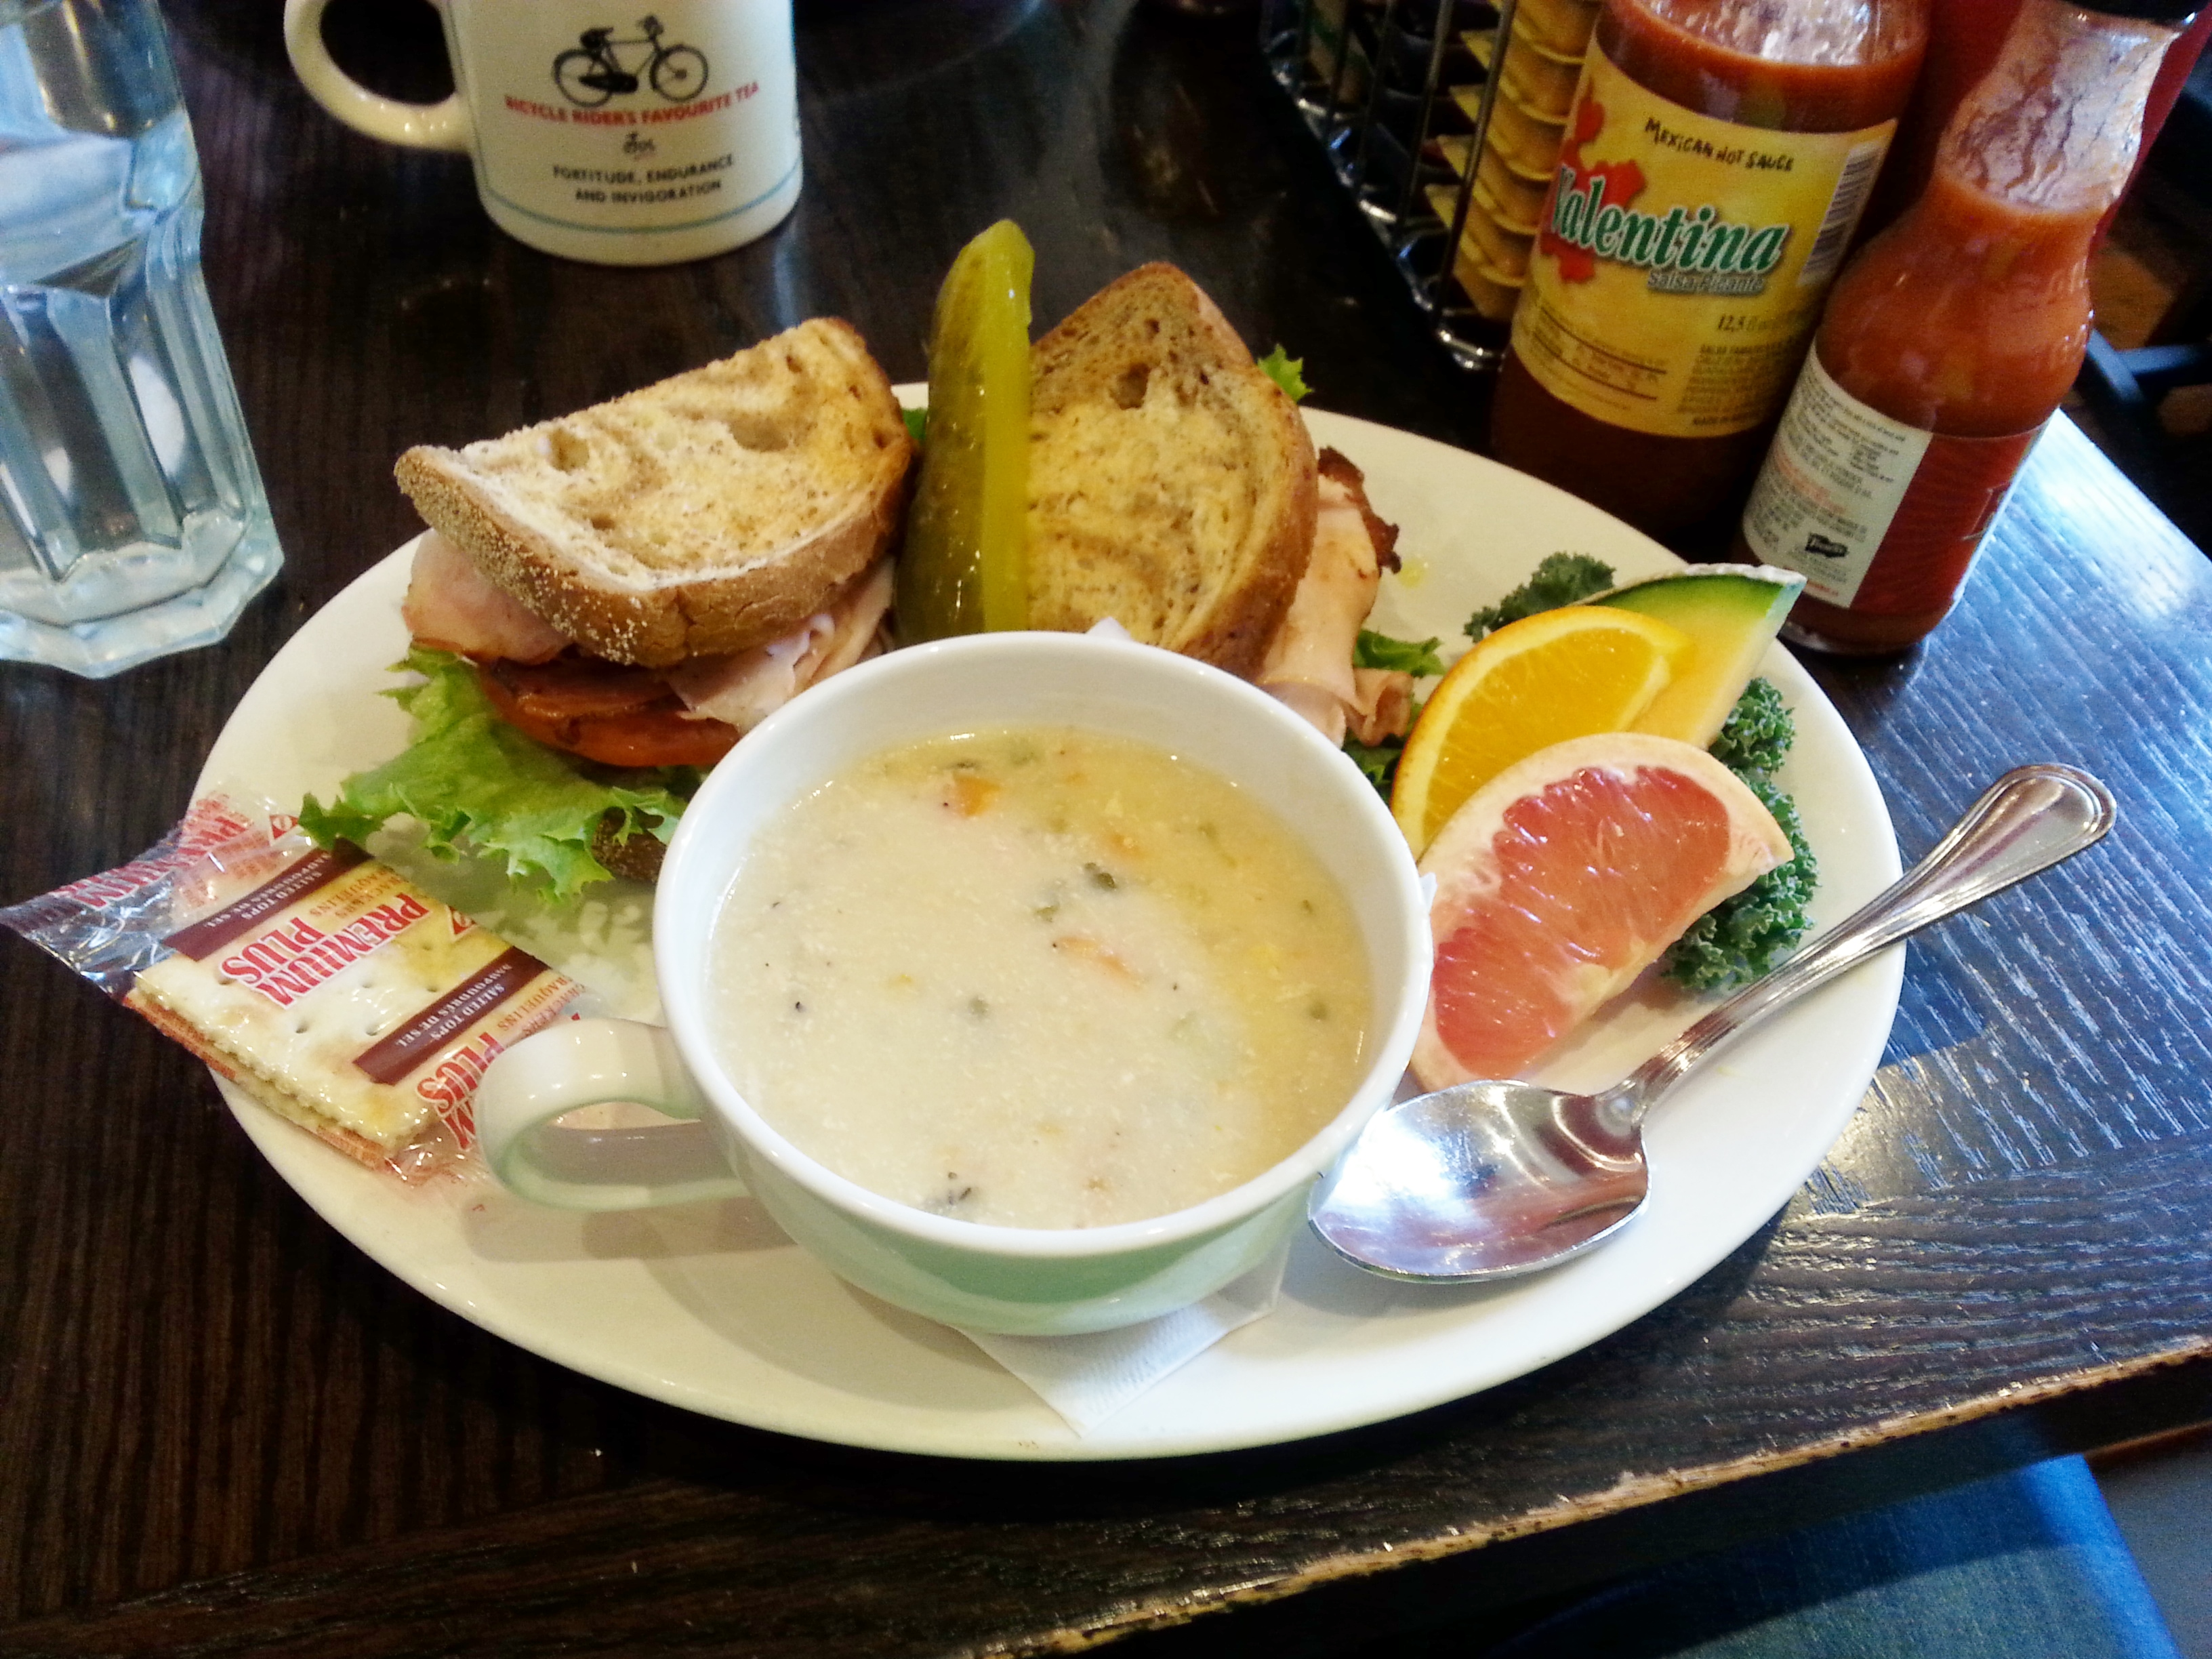 Turkey and bacon sandwich with creamy chicken and vegetable soup